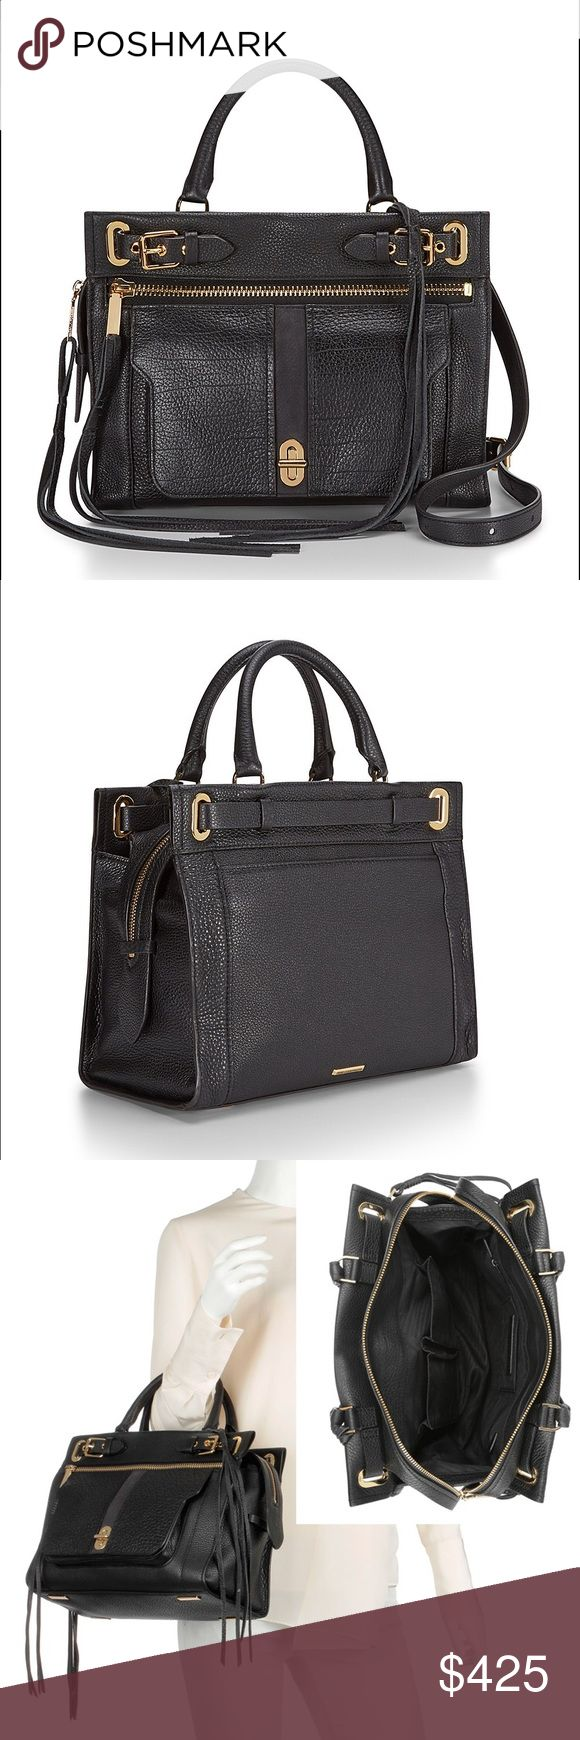 """Rebecca Minkoff Lyon Satchel - Black From web: Leather, zipper and belt details come together to form this career bag for rebel girls. The main compartment can hold iPad, wallet and pouches, while exterior pockets give you quick access to your essentials. Sling on your shoulder or carry by the top handles. 12""""W x 9""""H x 6""""D. Genuine leather. 22"""" adjustable shoulder strap. 4"""" handle drop. Custom gold hardware. Exterior zip pocket, and slip compartment w/ turn lock closure. Top zip closure. 2…"""